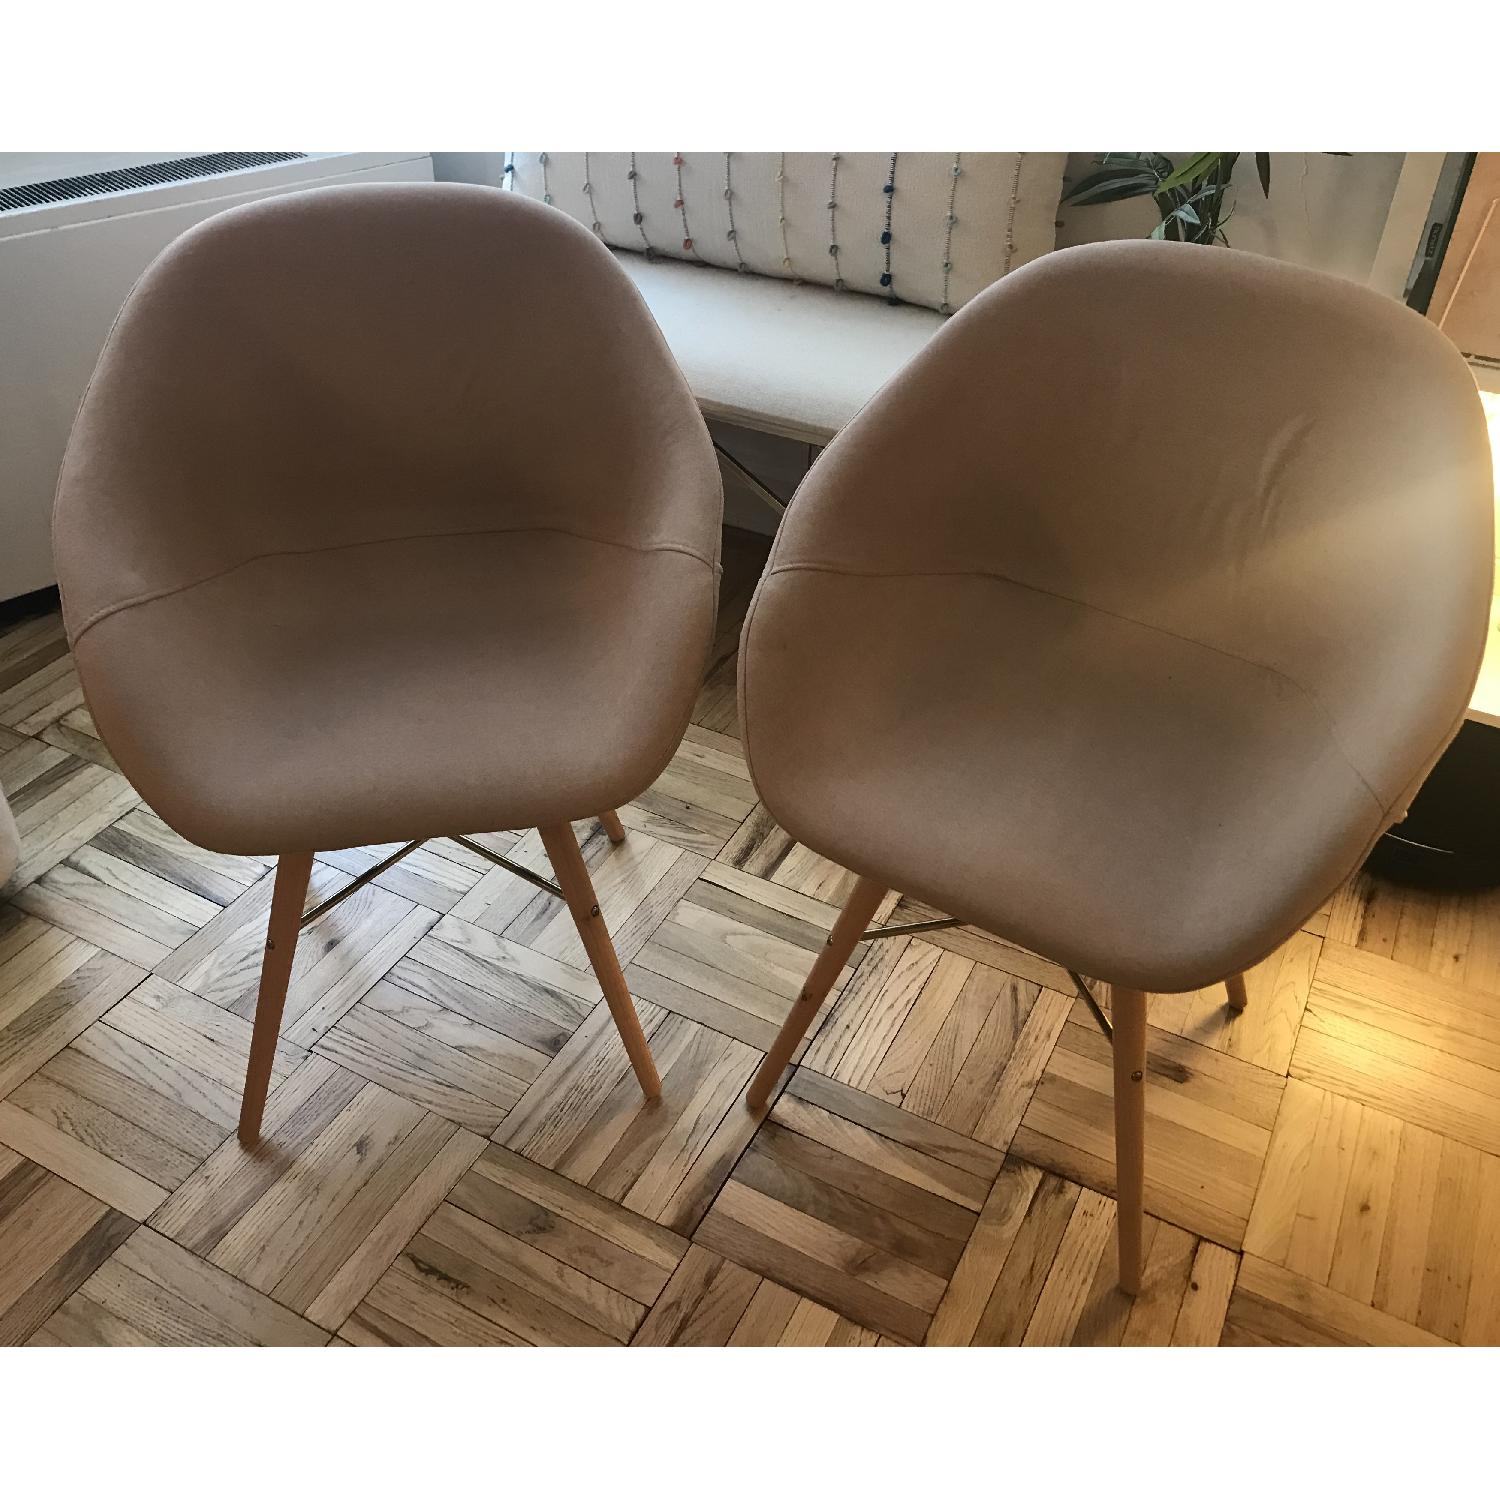 Urban Outfitters Adelina Occasional Chair - image-1